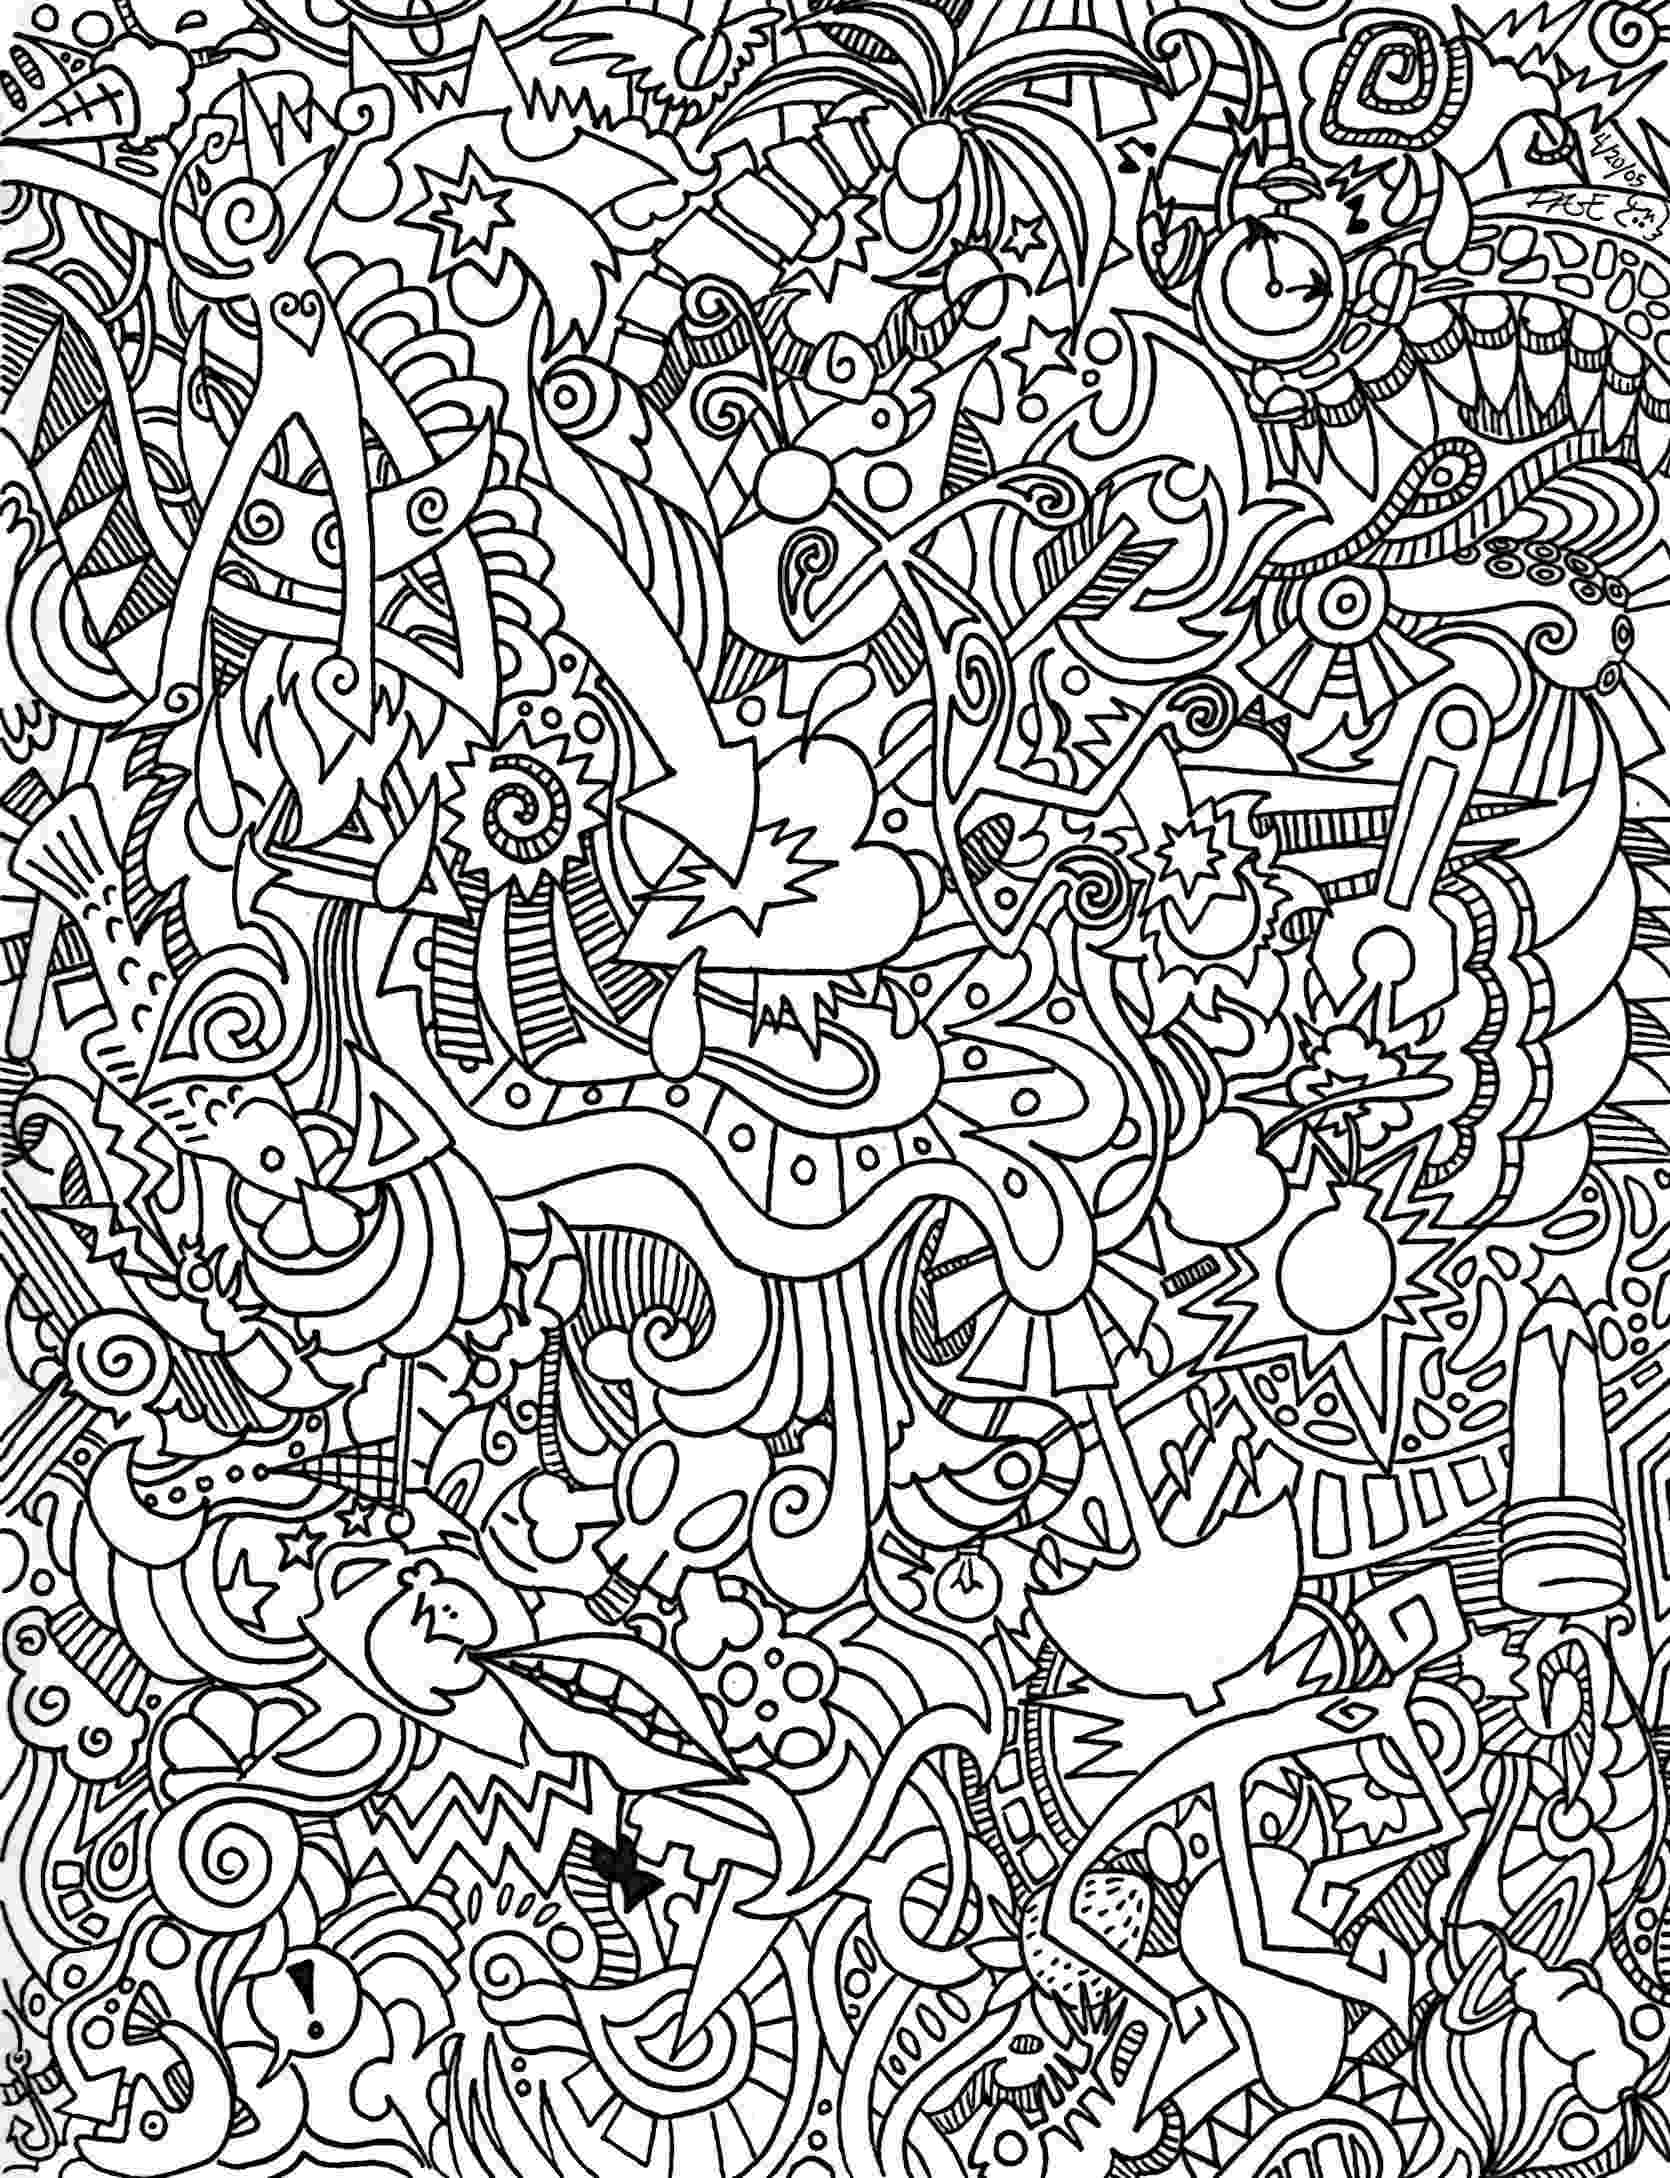 psychedelic colouring pages psychedelic coloring pages to download and print for free psychedelic colouring pages